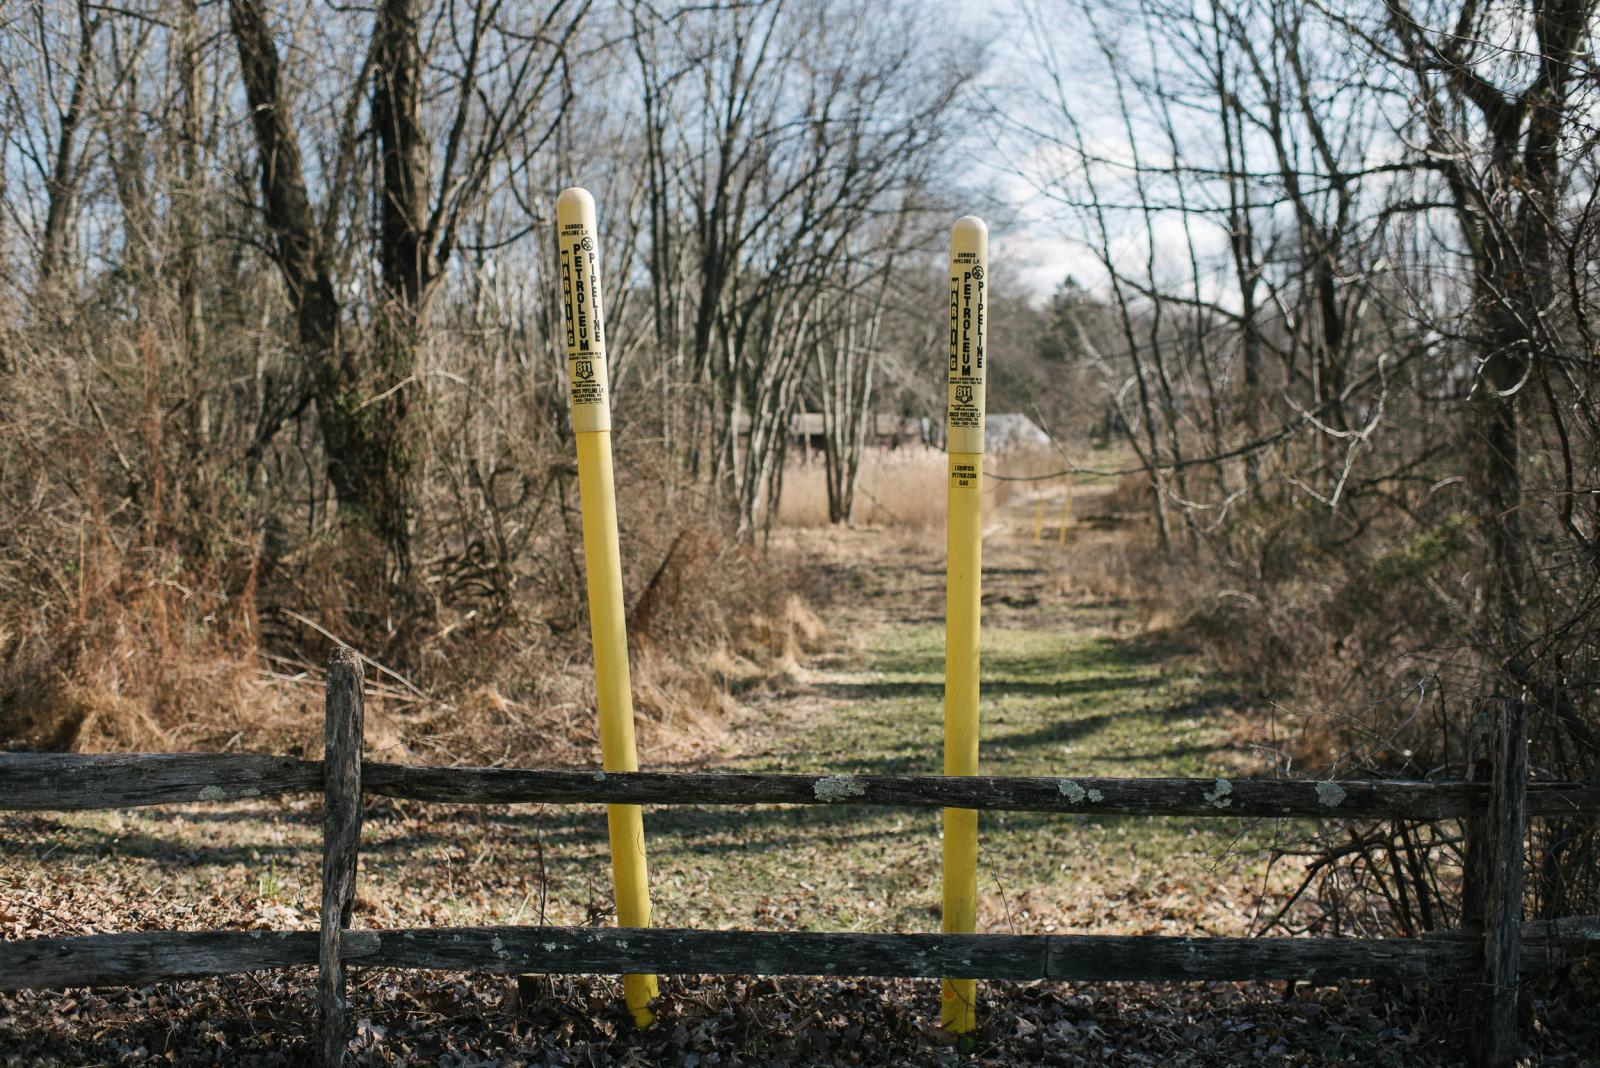 Warning signs for the Mariner East Pipeline sit on Shepherd Lane in Glen Mills, PA. on Thursday, January 16, 2020. Photo by Hannah Yoon